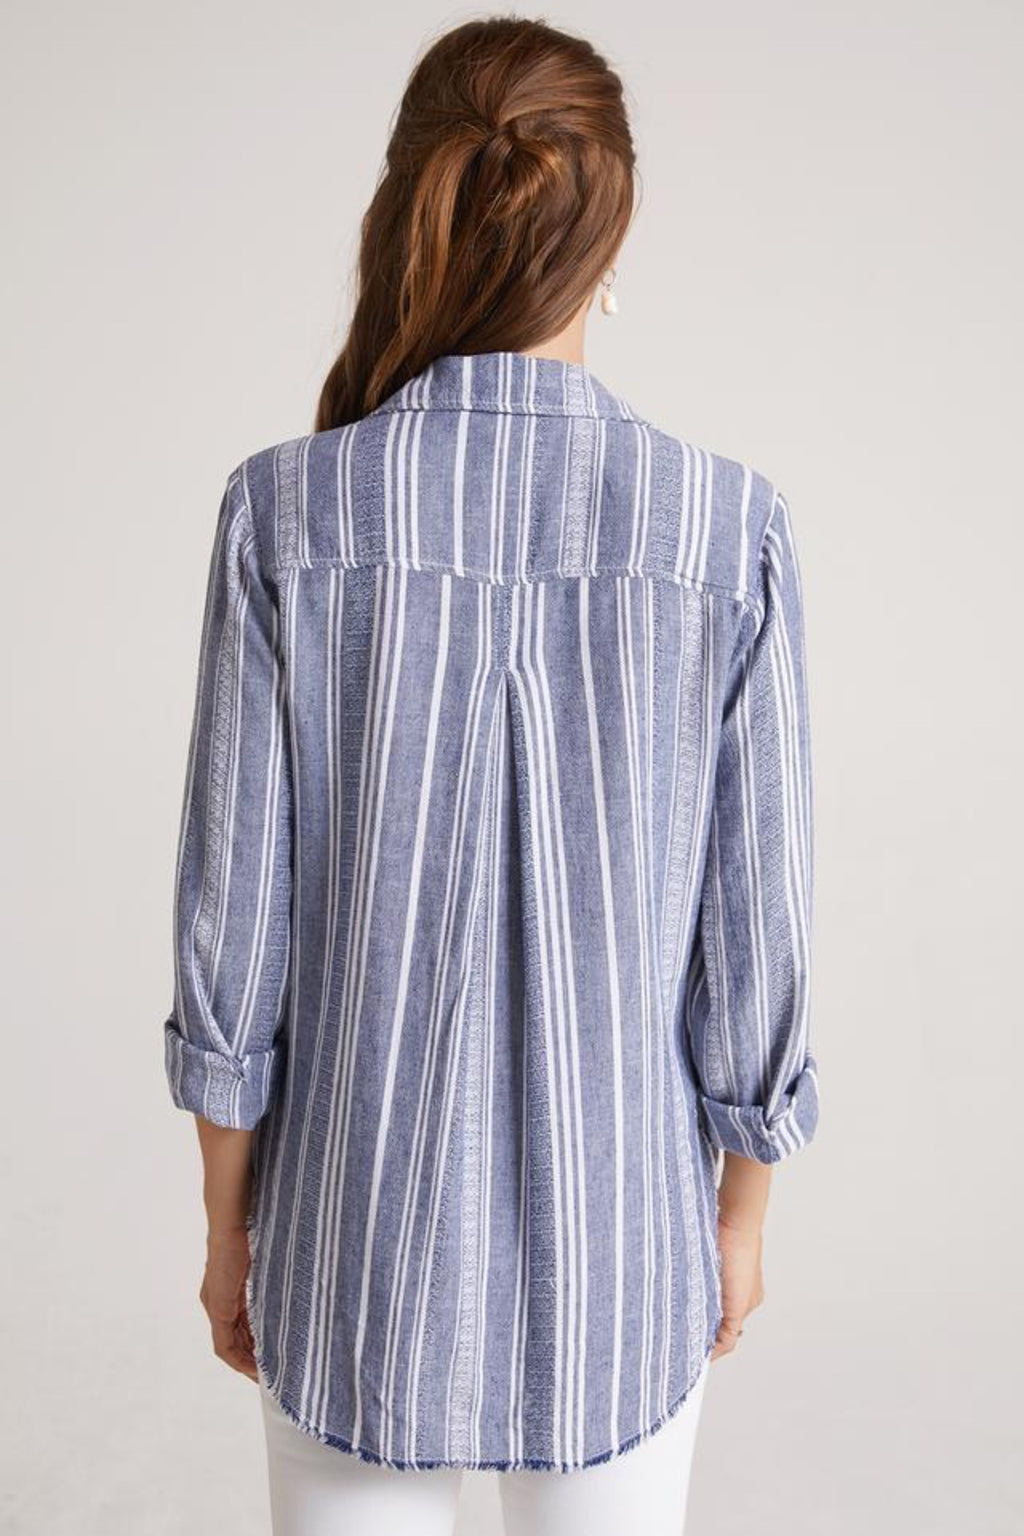 Frayed Classic Button Down Top